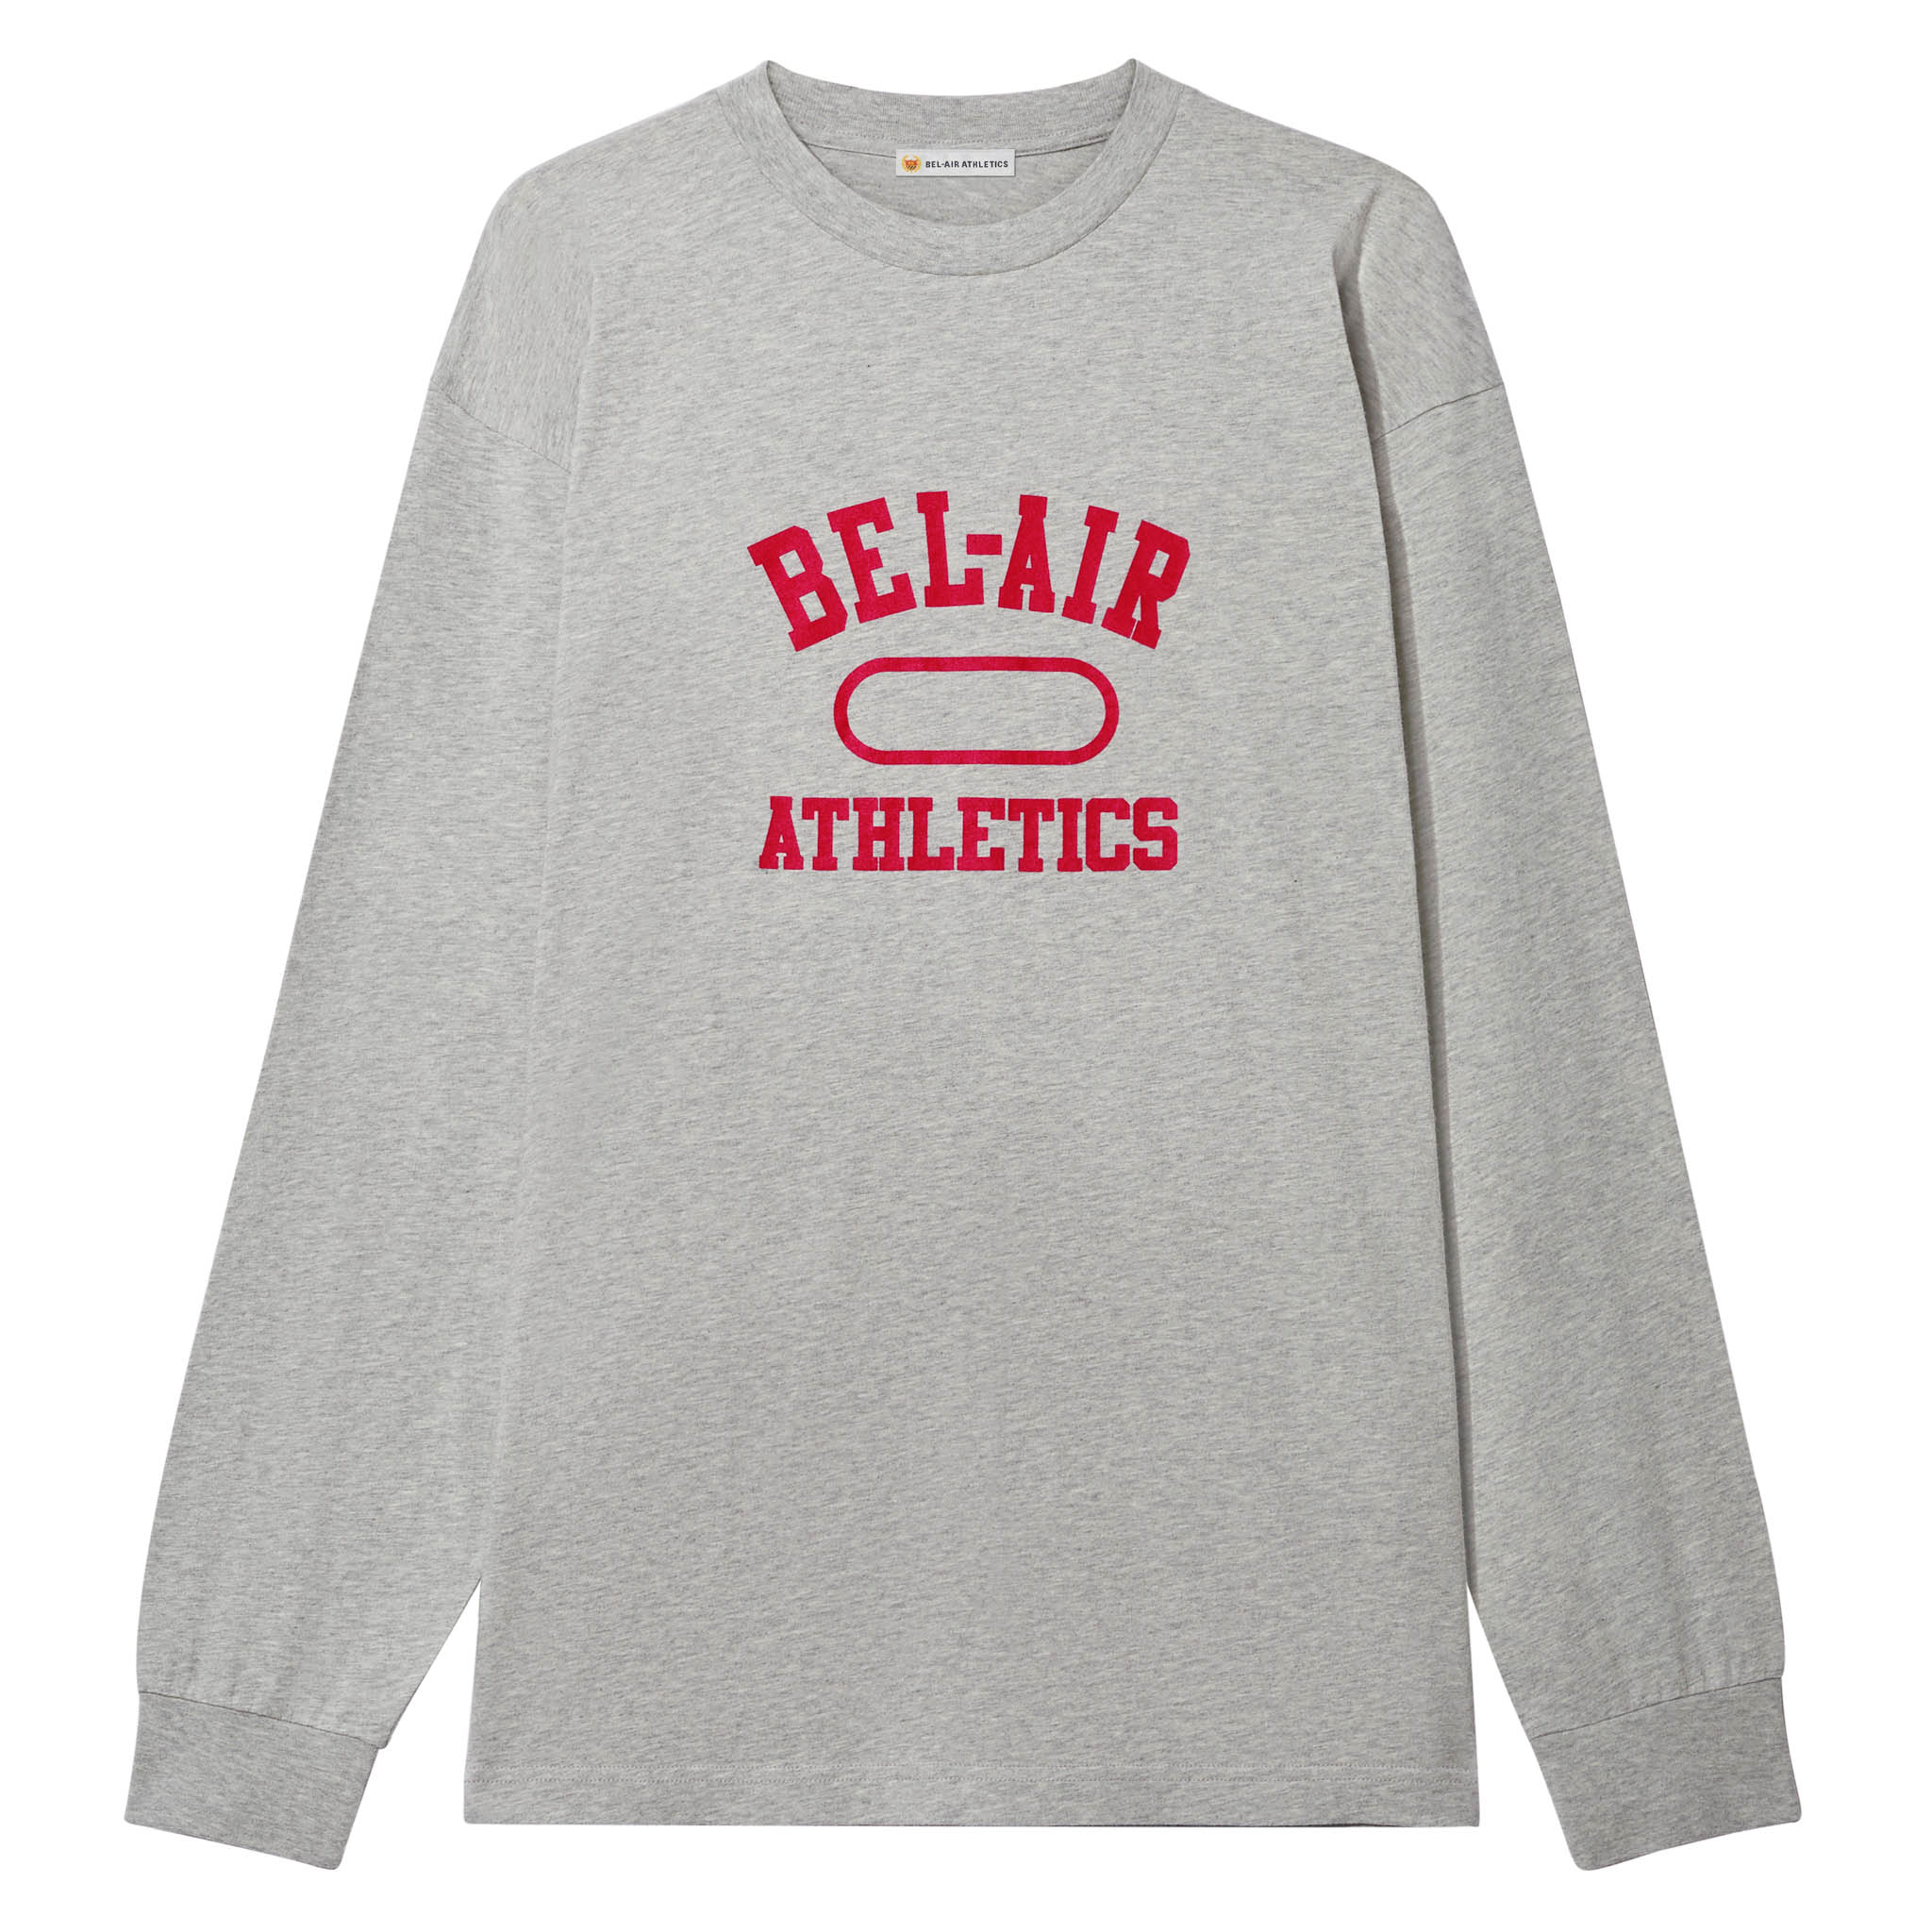 Gym Logo LS T-Shirt - Athletic Grey with Academy Red print